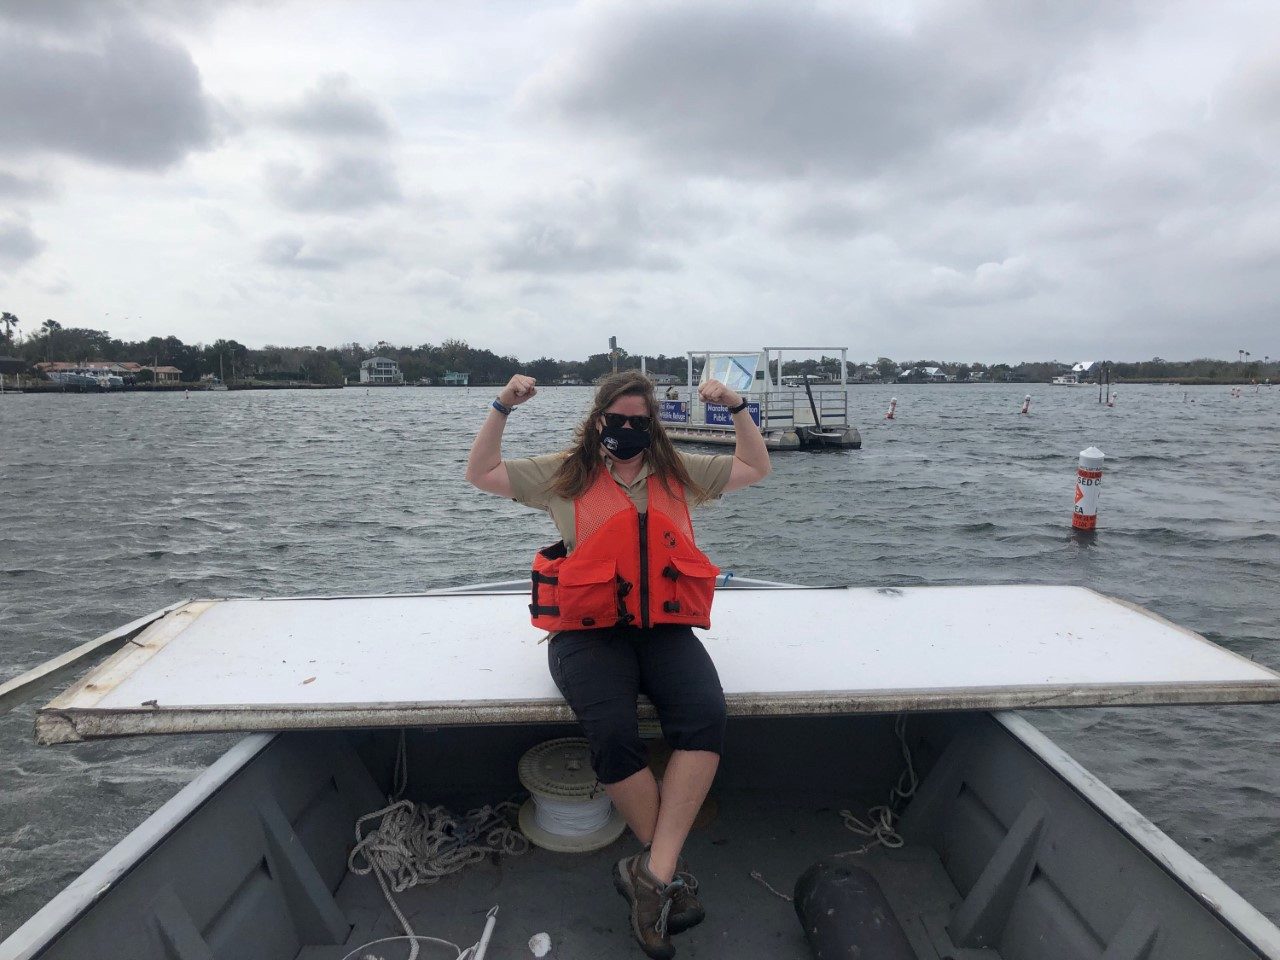 woman on boat in life vest and mask raises arms in triumph